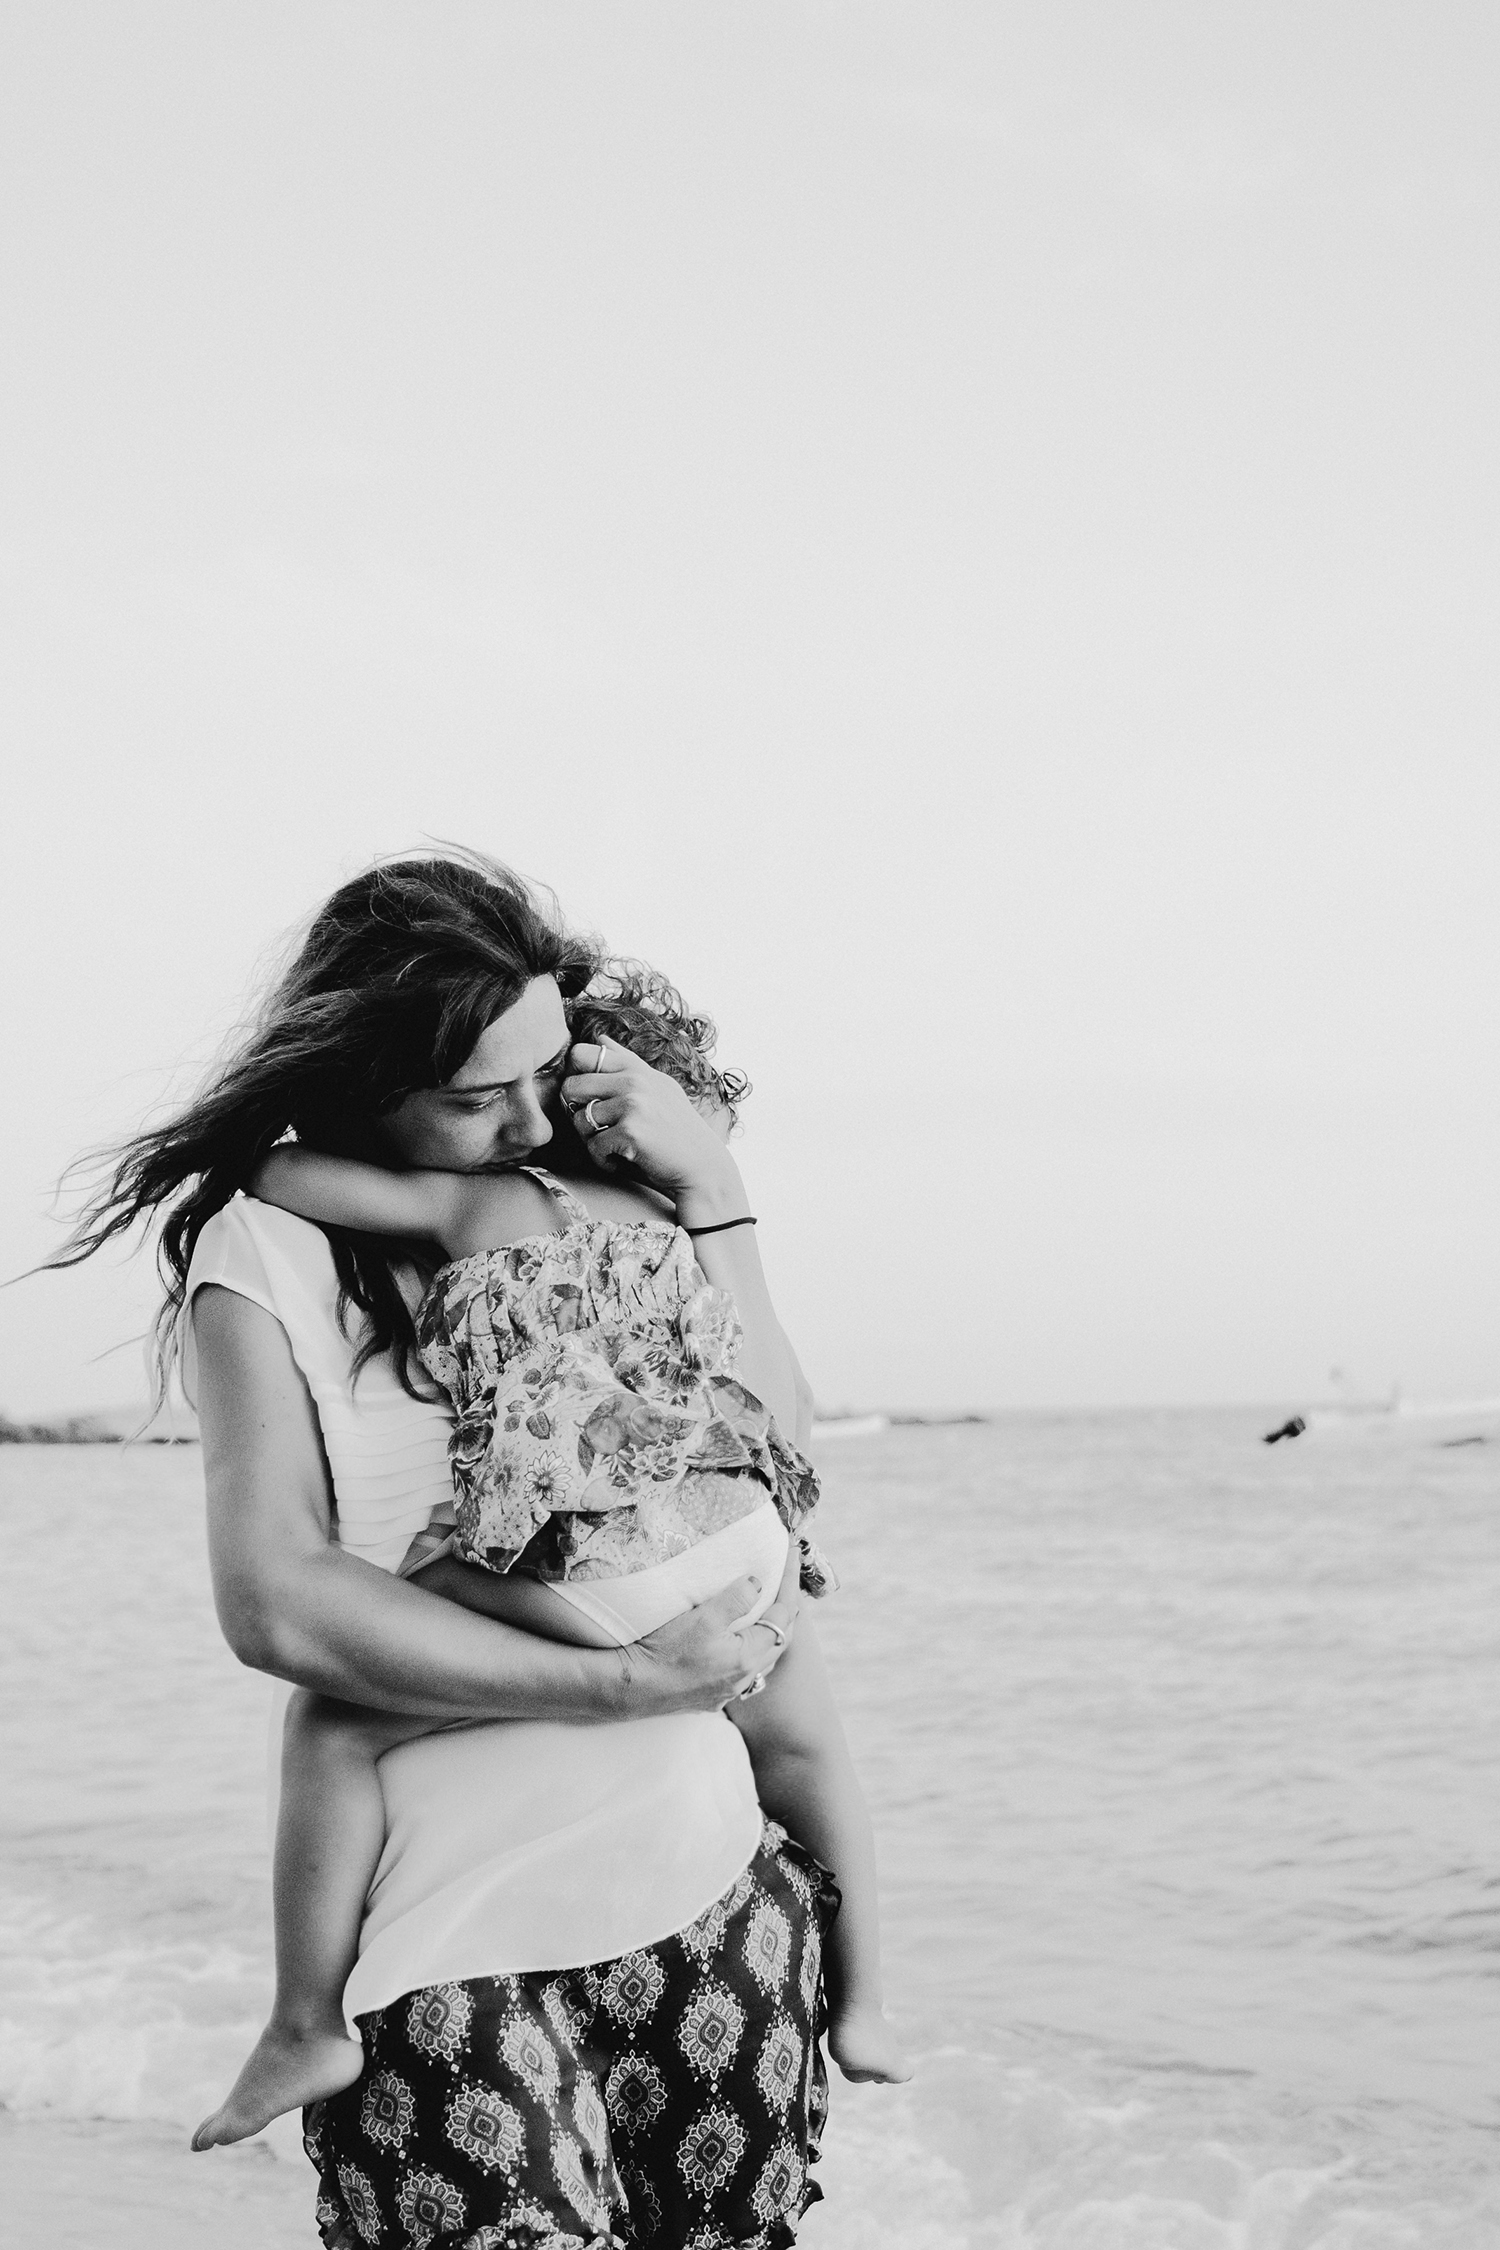 mom hugging daughter playing on the beach during family lifestyle photo session in palombaggia beach, santa giulia. Corsica. by rebecca rinaldi photography